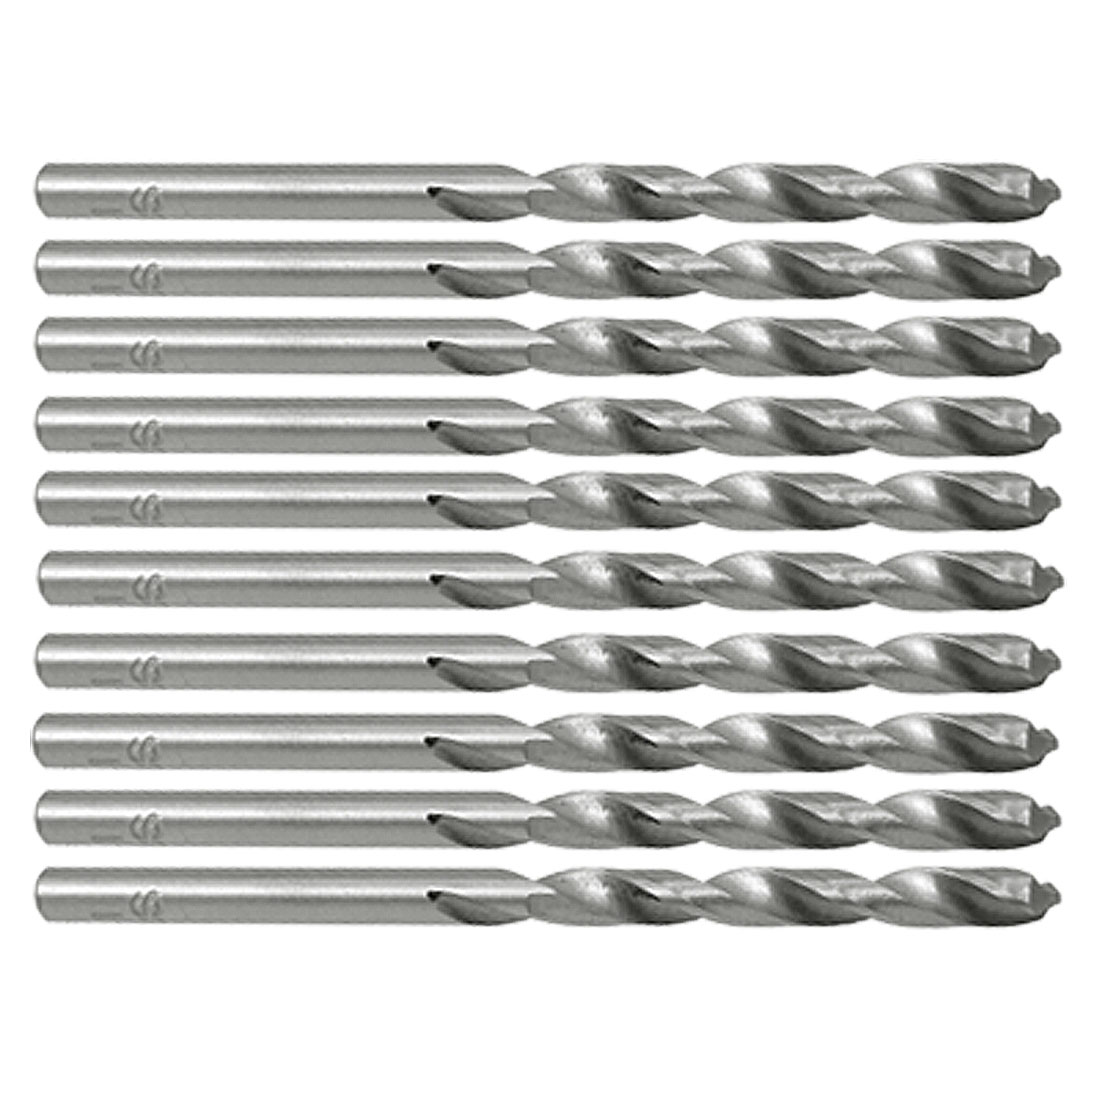 4.1mm Dia Right-hand HSS Straight Shank Twist Drill Bits 10pcs